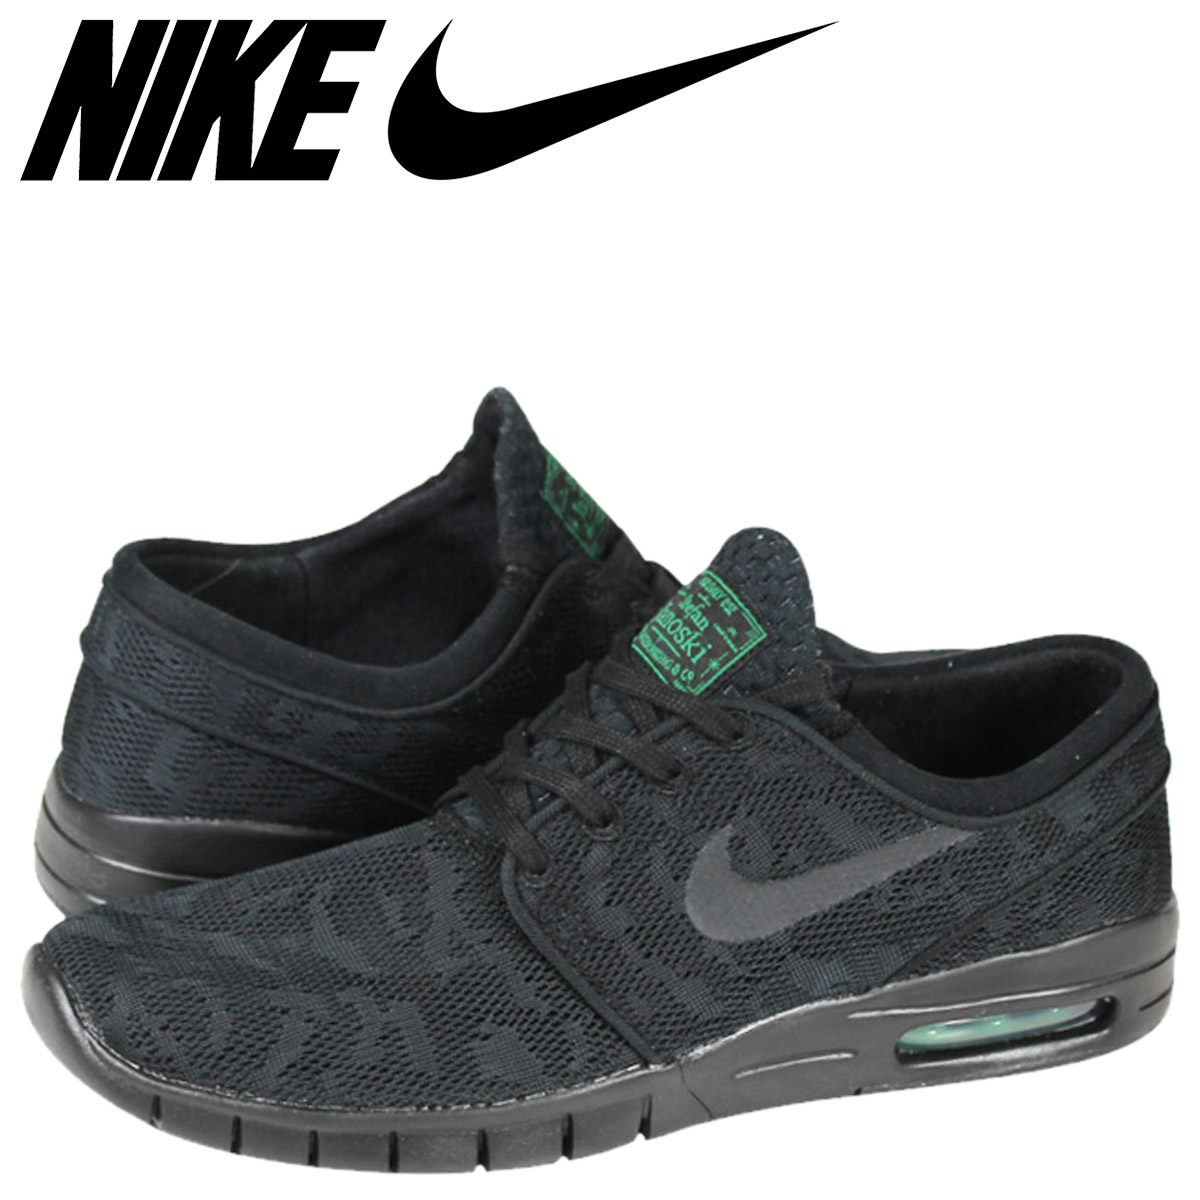 sugar online shop nike nike sb stefan janoski max. Black Bedroom Furniture Sets. Home Design Ideas